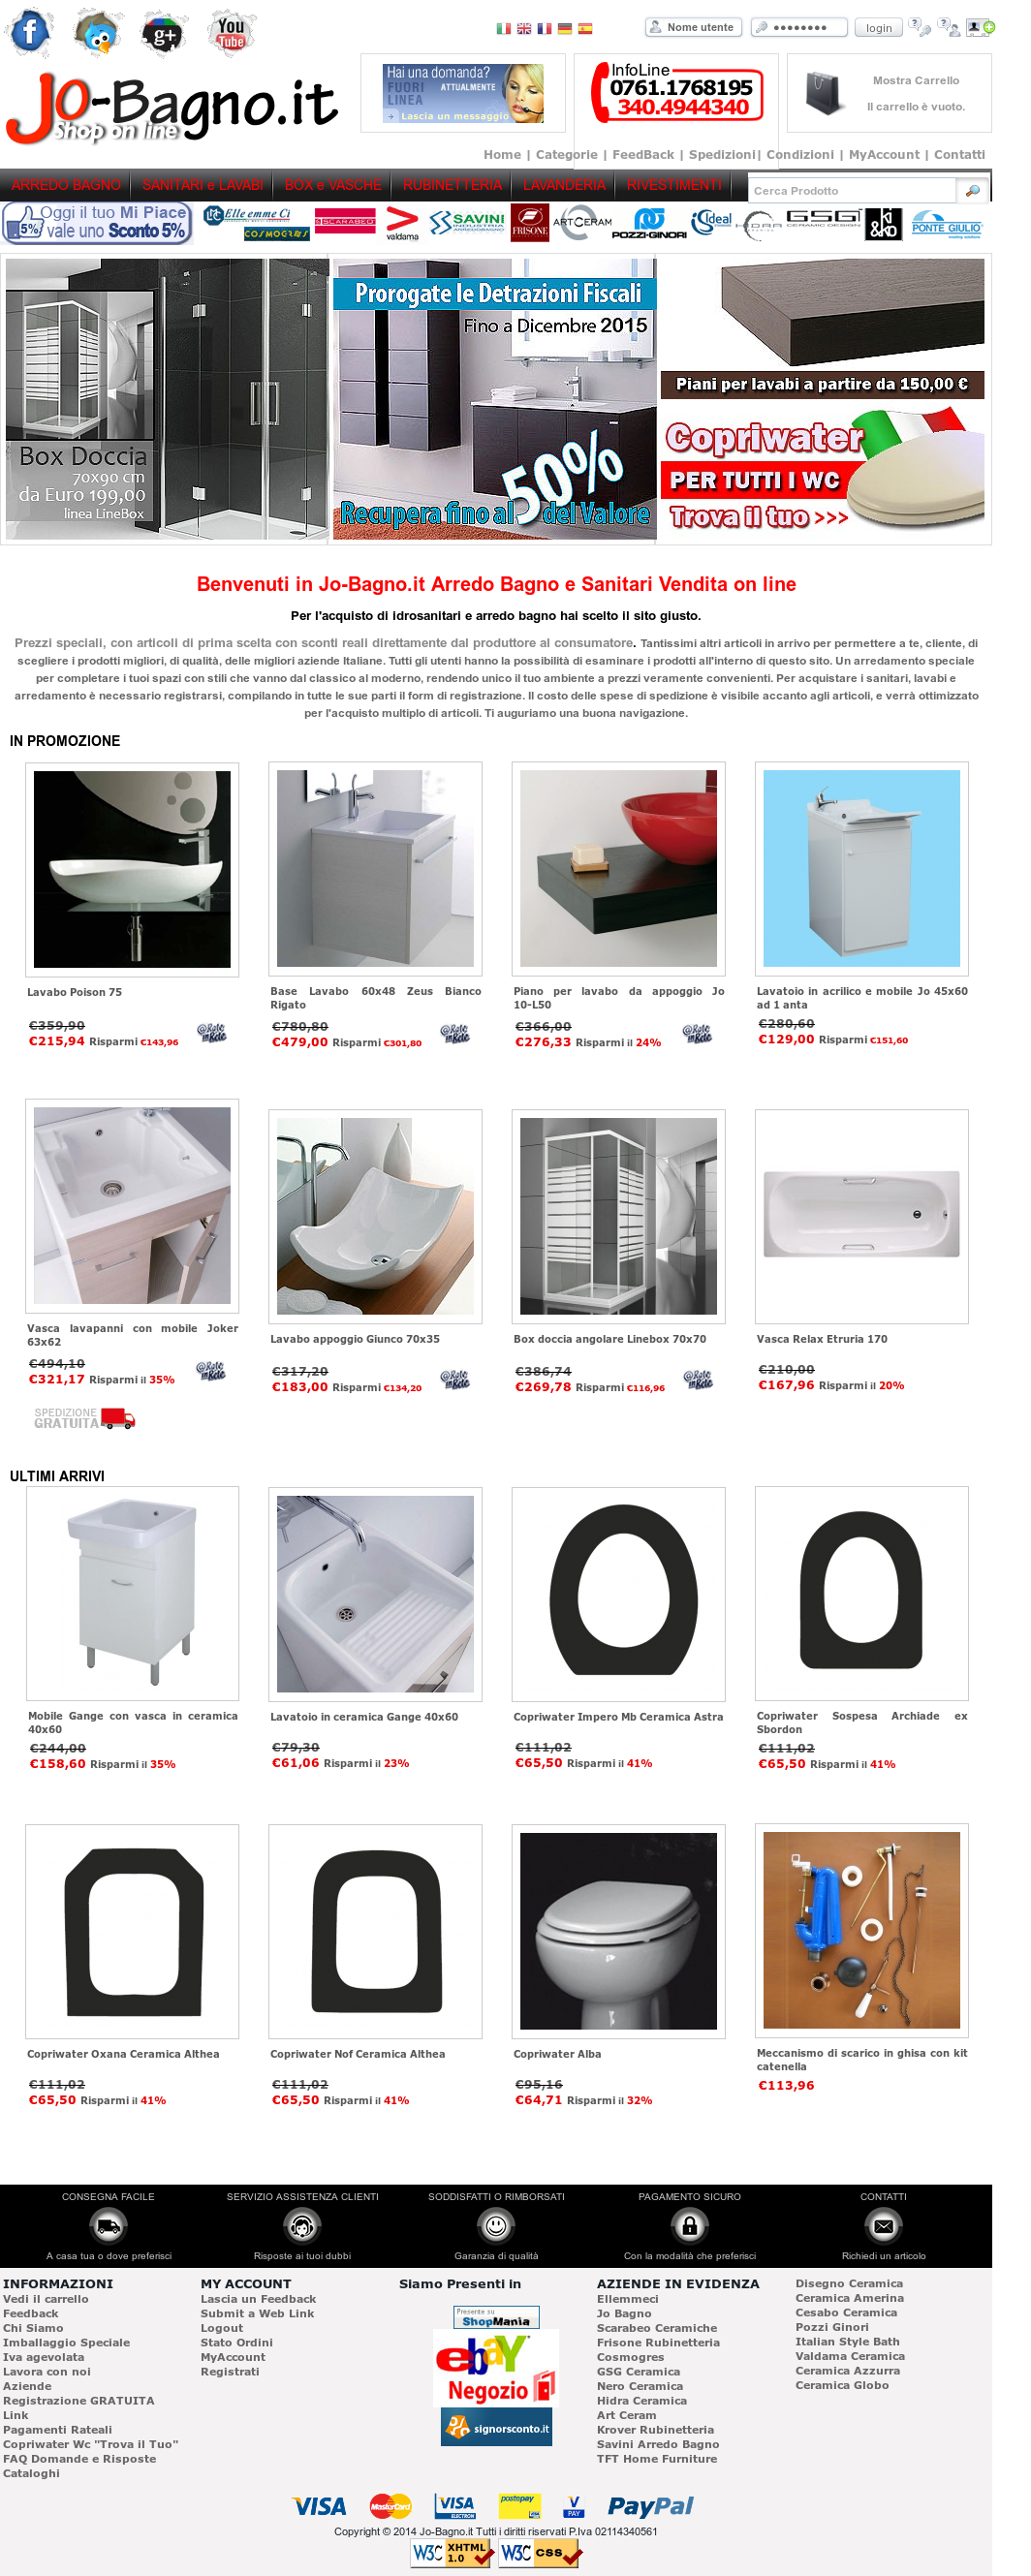 Accessori Bagno Neri jo-bagno.it sanitari e arredo bagno competitors, revenue and